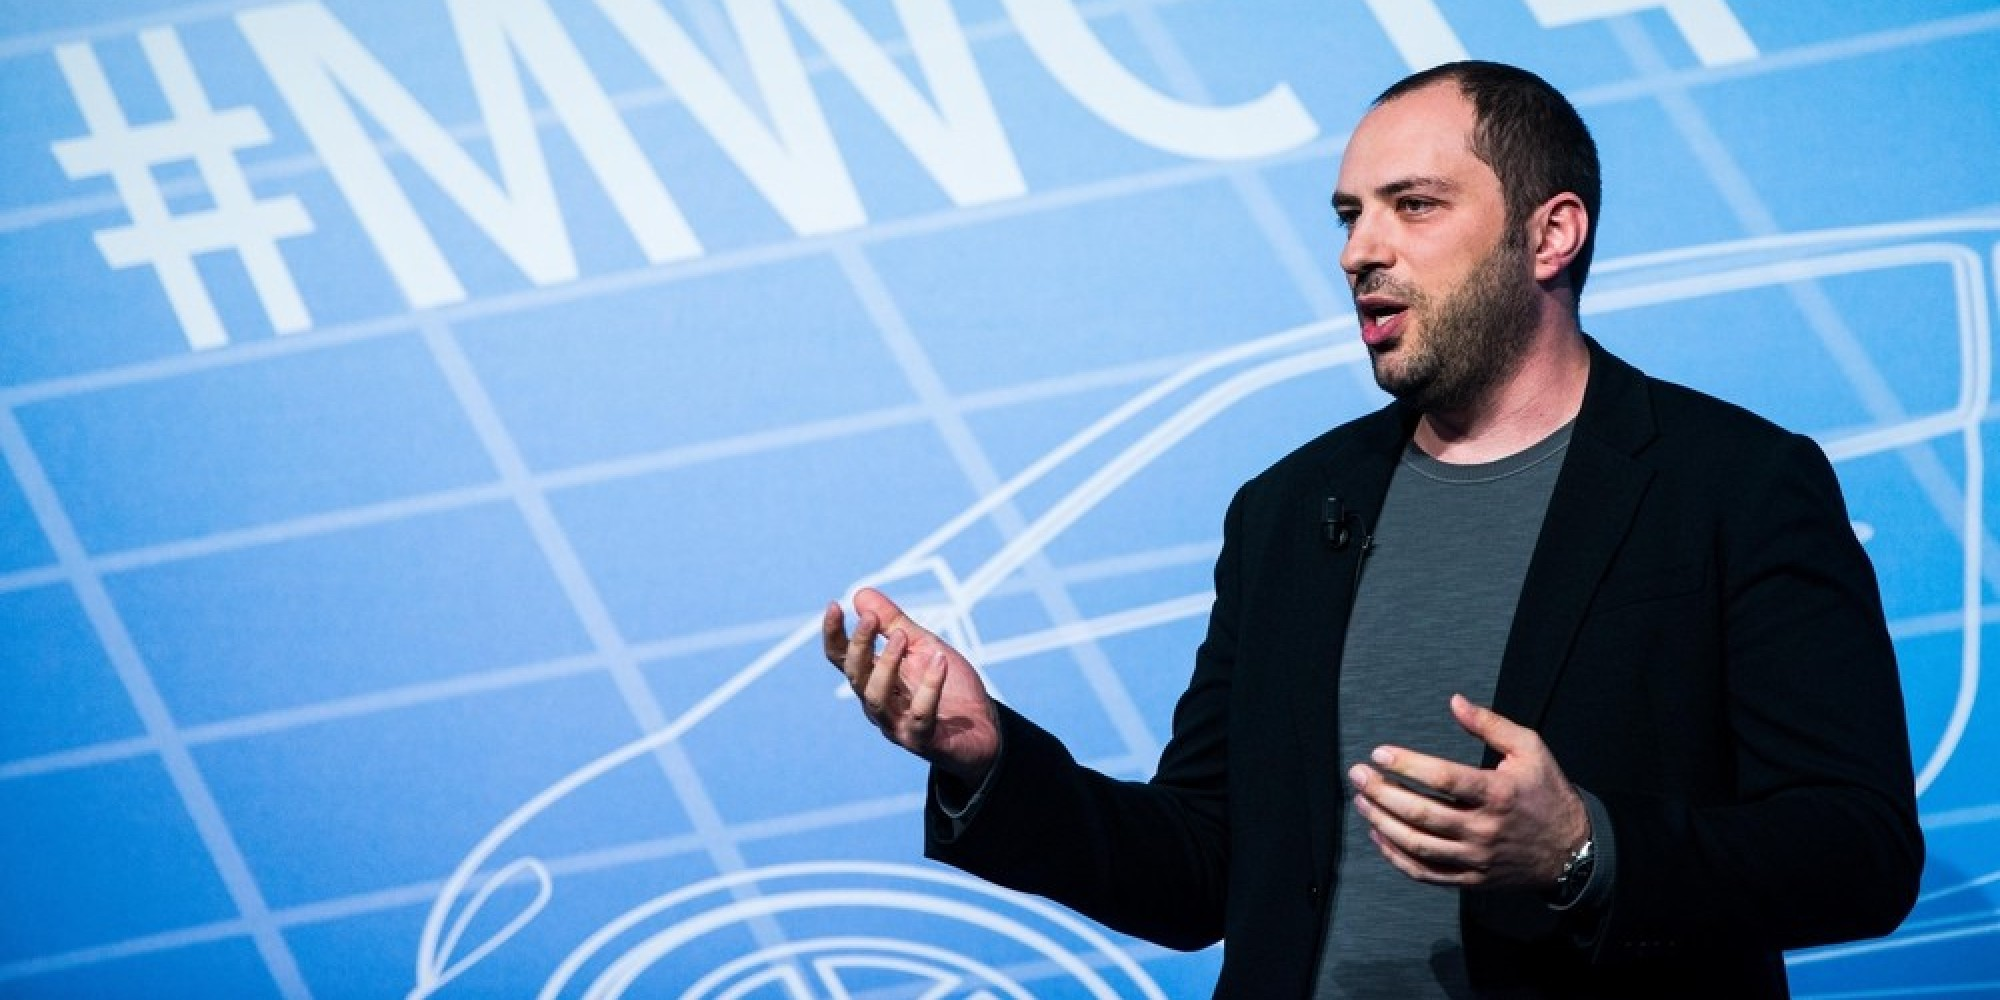 BARCELONA, SPAIN - FEBRUARY 24:  Whatsapp CEo Jan Koum during a Keynote conference as part of the first day of the Mobile World Congress 2013 at the Fira Gran Via complex on February 24, 2014 in Barcelona, Spain. The annual Mobile World Congress hosts some of the world's largest communication companies, with many unveiling their latest phones and gadgets. The show runs from February 24 - February 27.  (Photo by David Ramos/Getty Images)